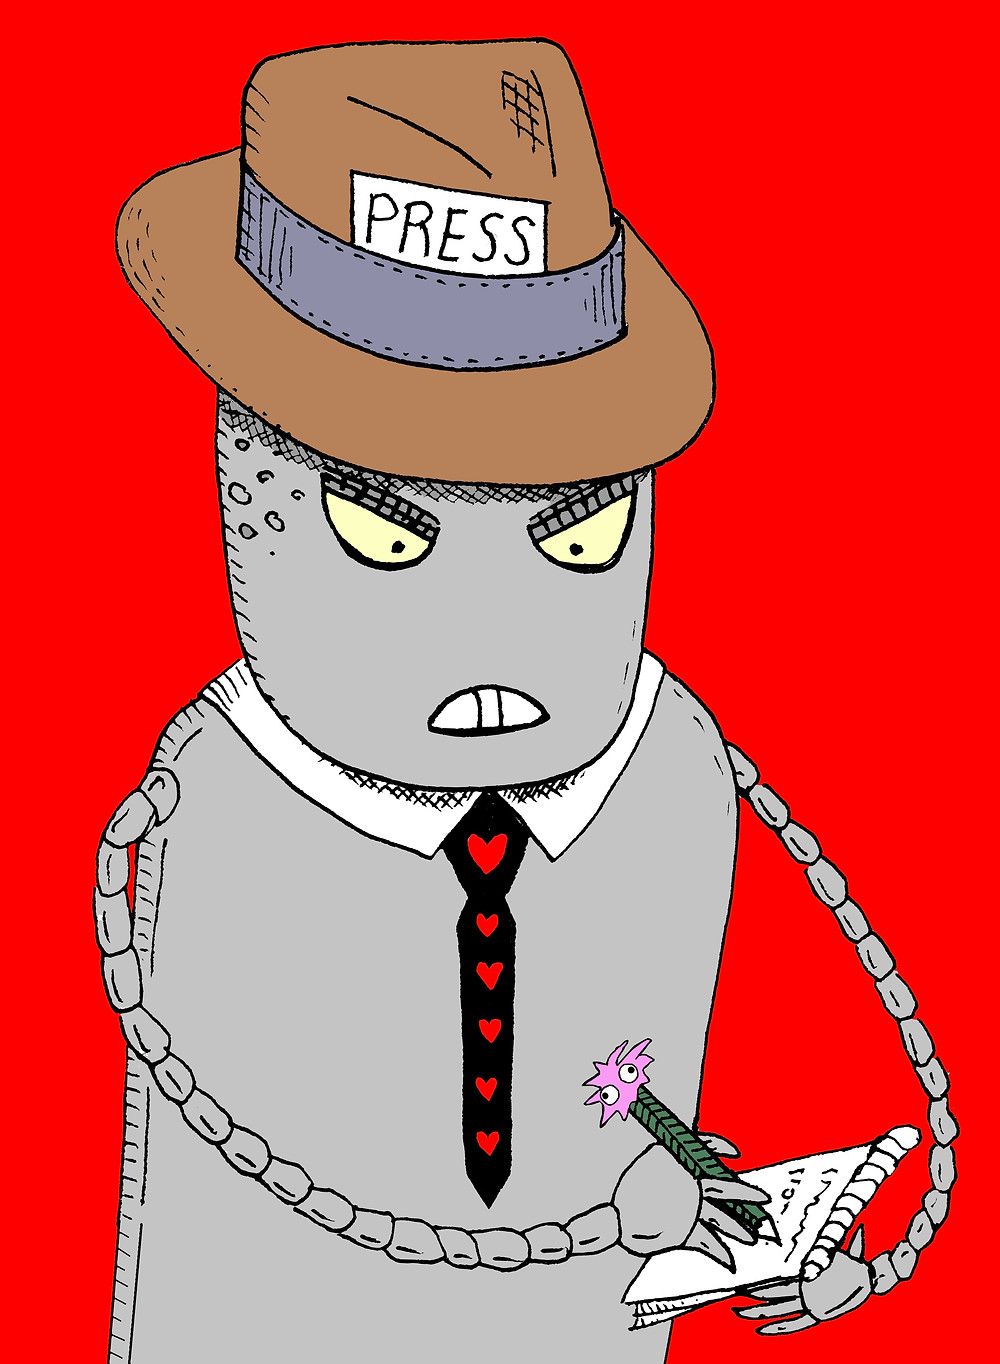 Sergeant Megatron 5000 dressed as a reporter